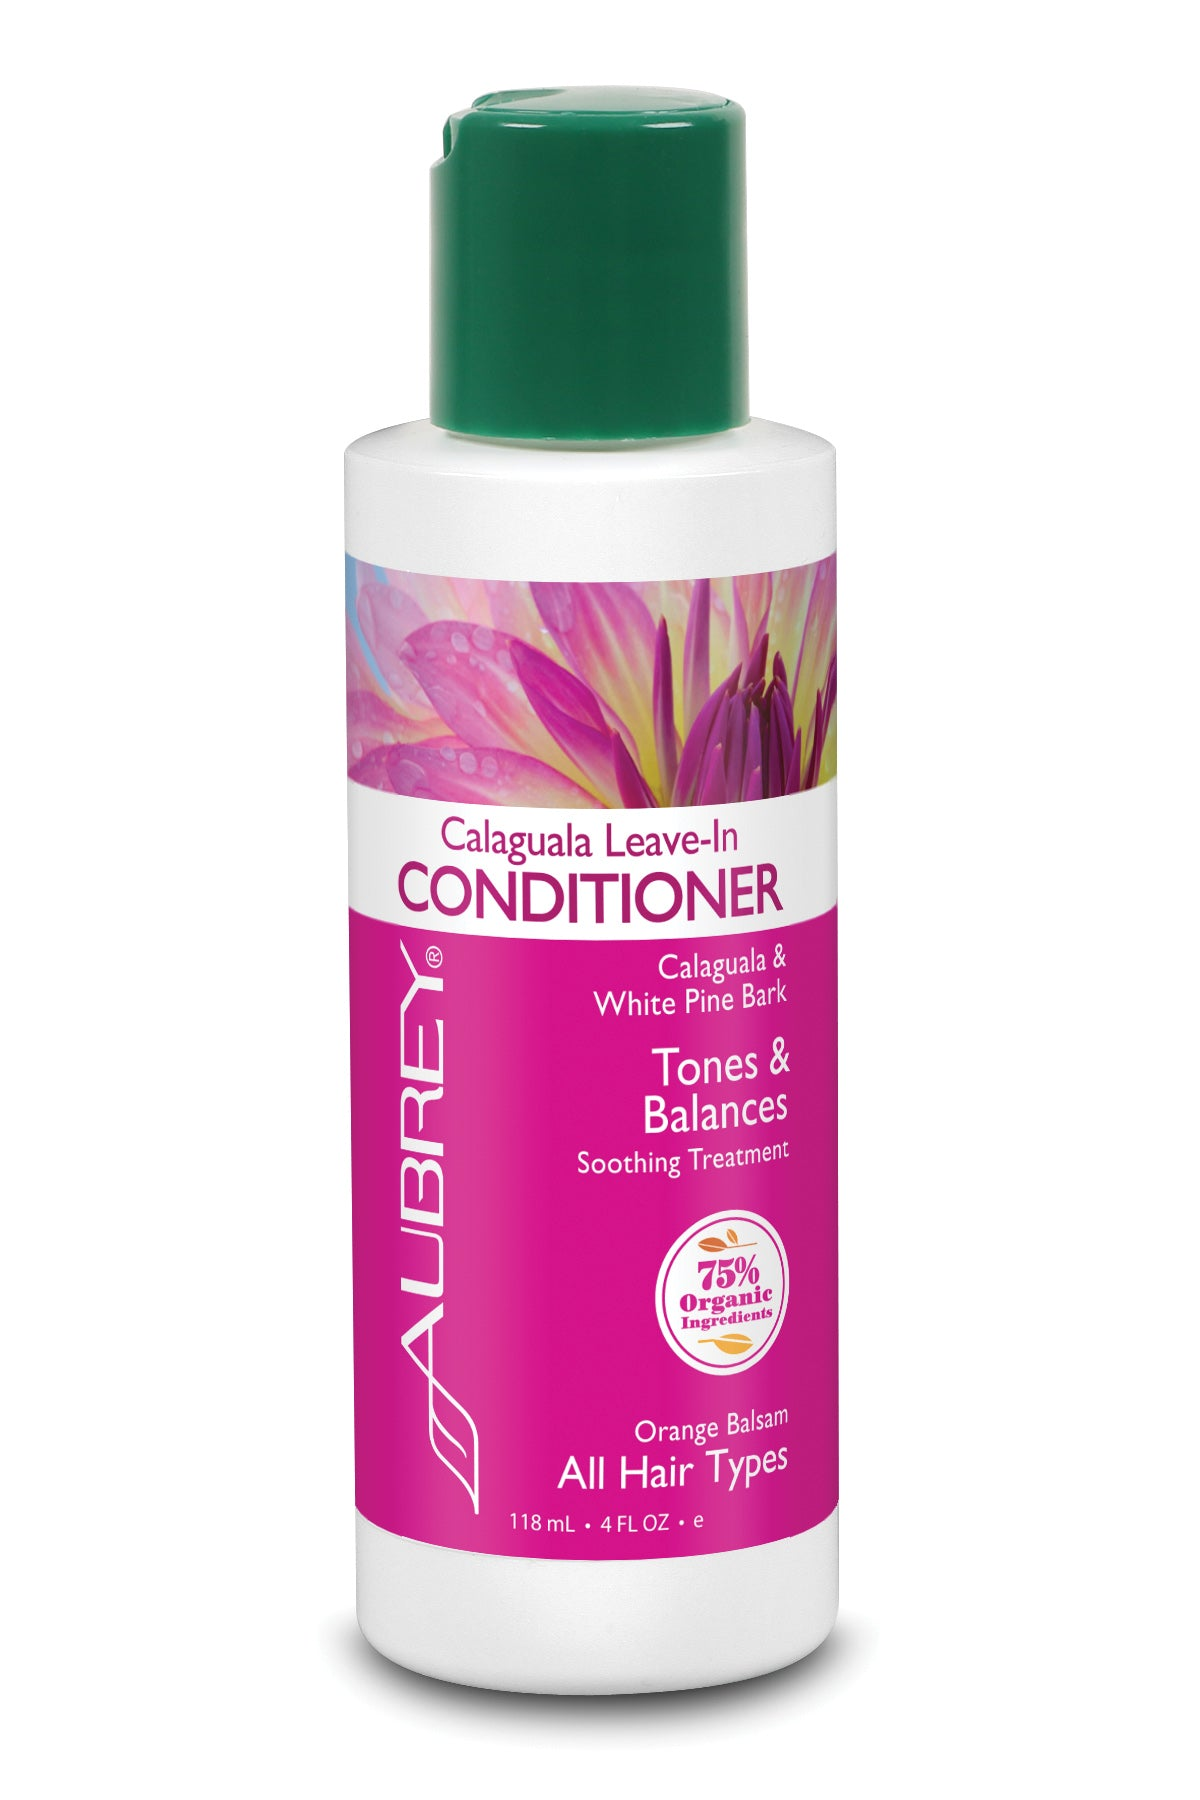 Calaguala Fern Conditioner - 4oz